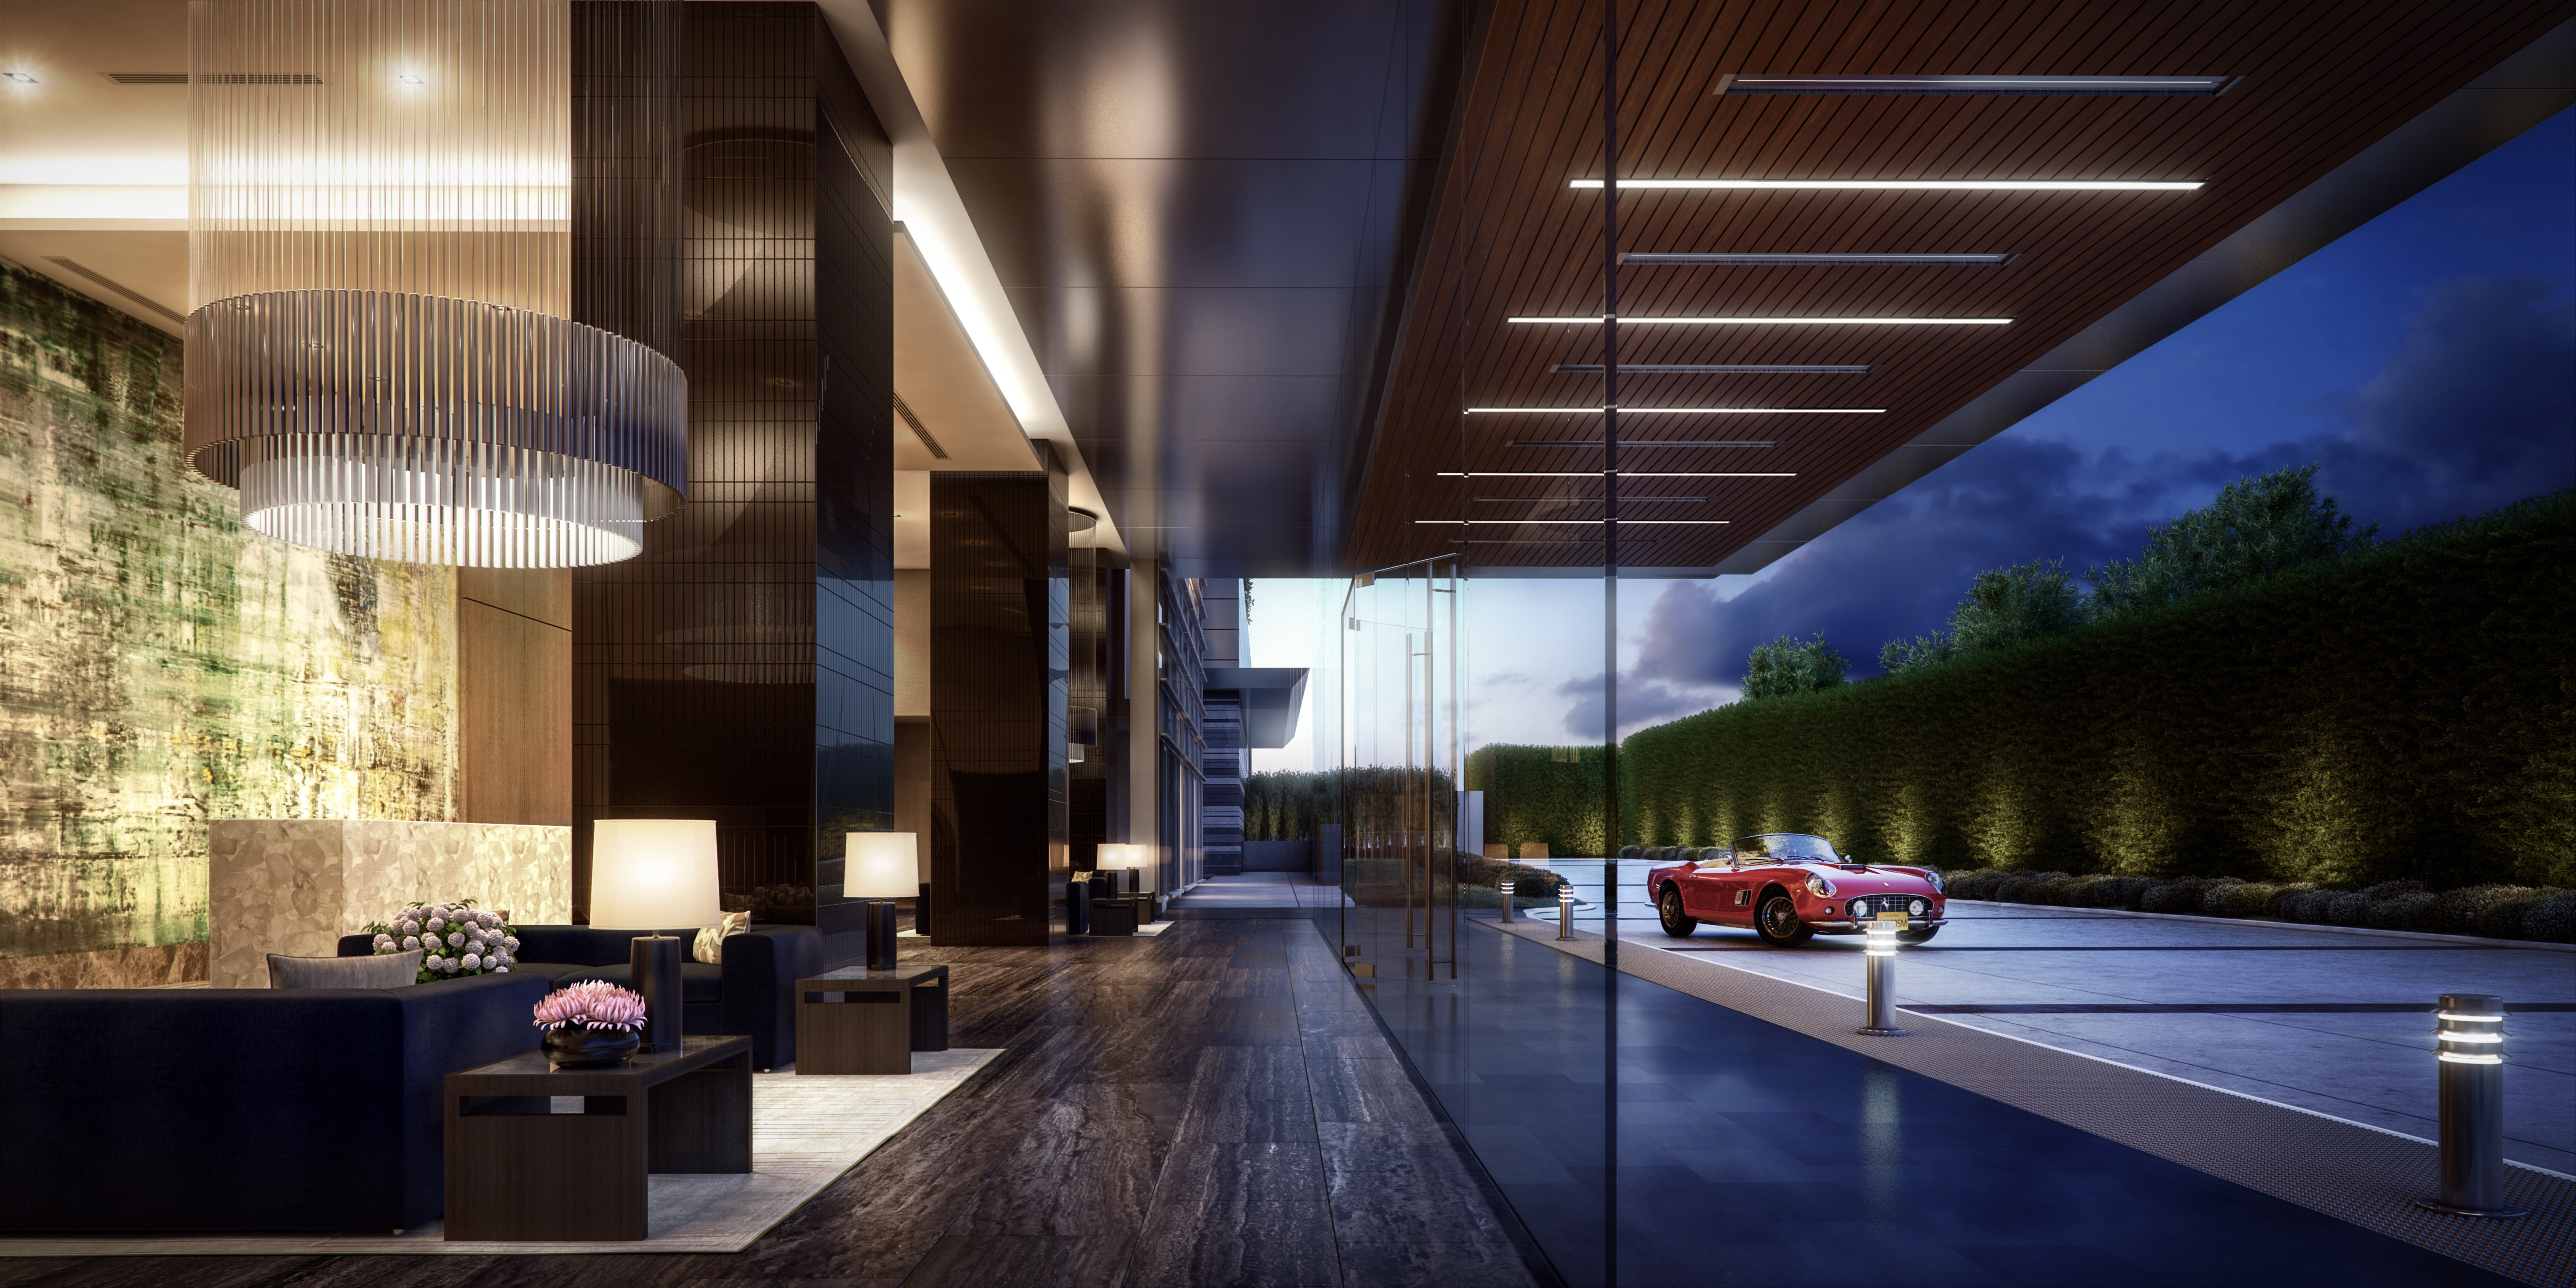 A rendering of the lobby